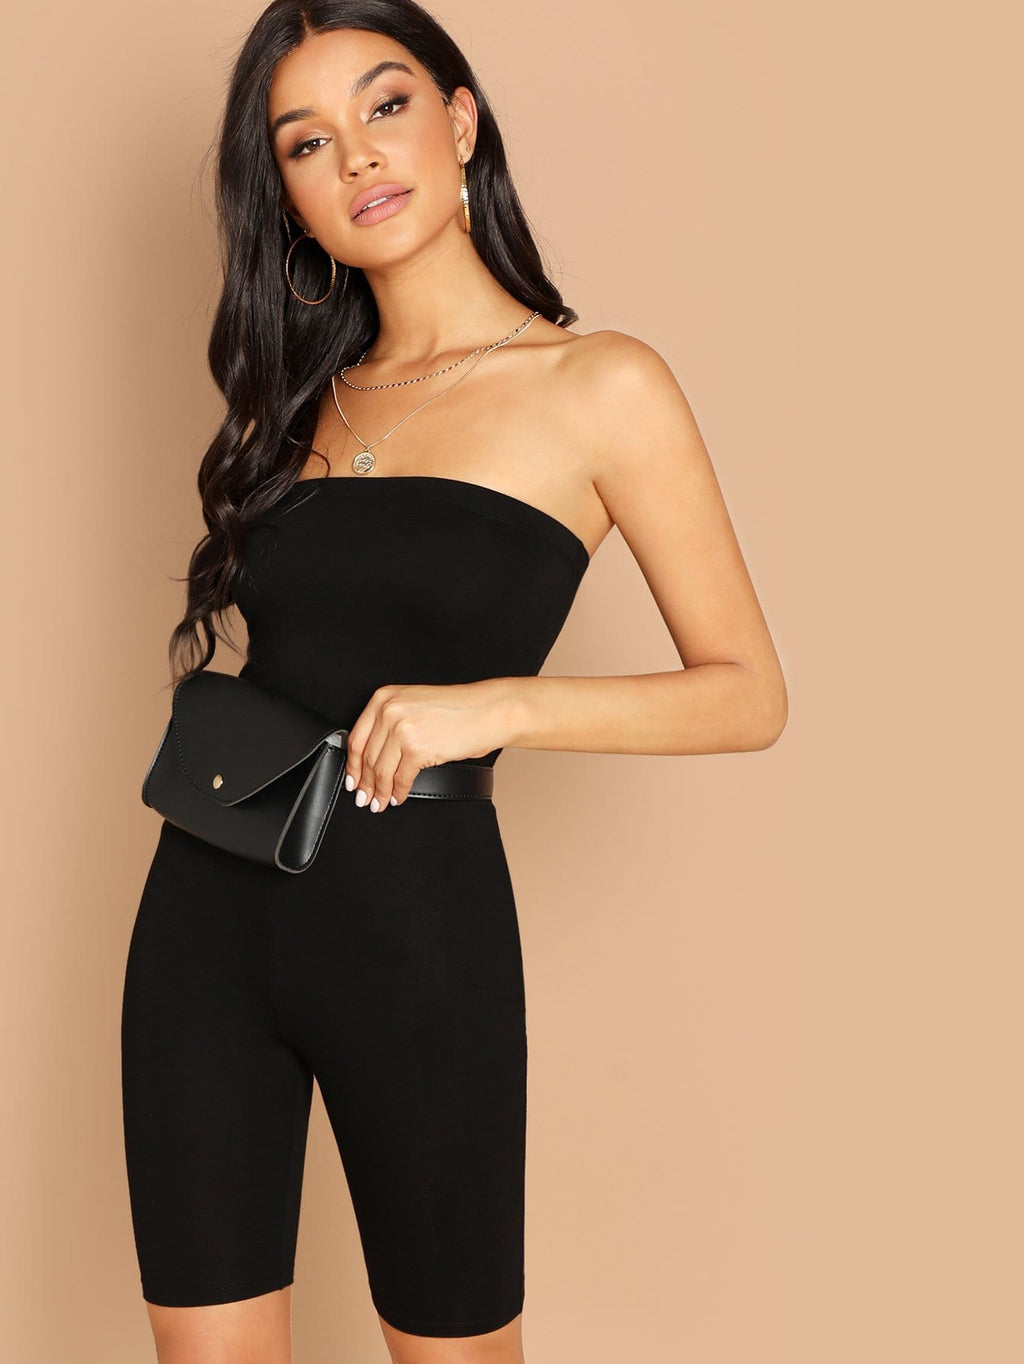 Form Fitting Glitter Strapless Romper